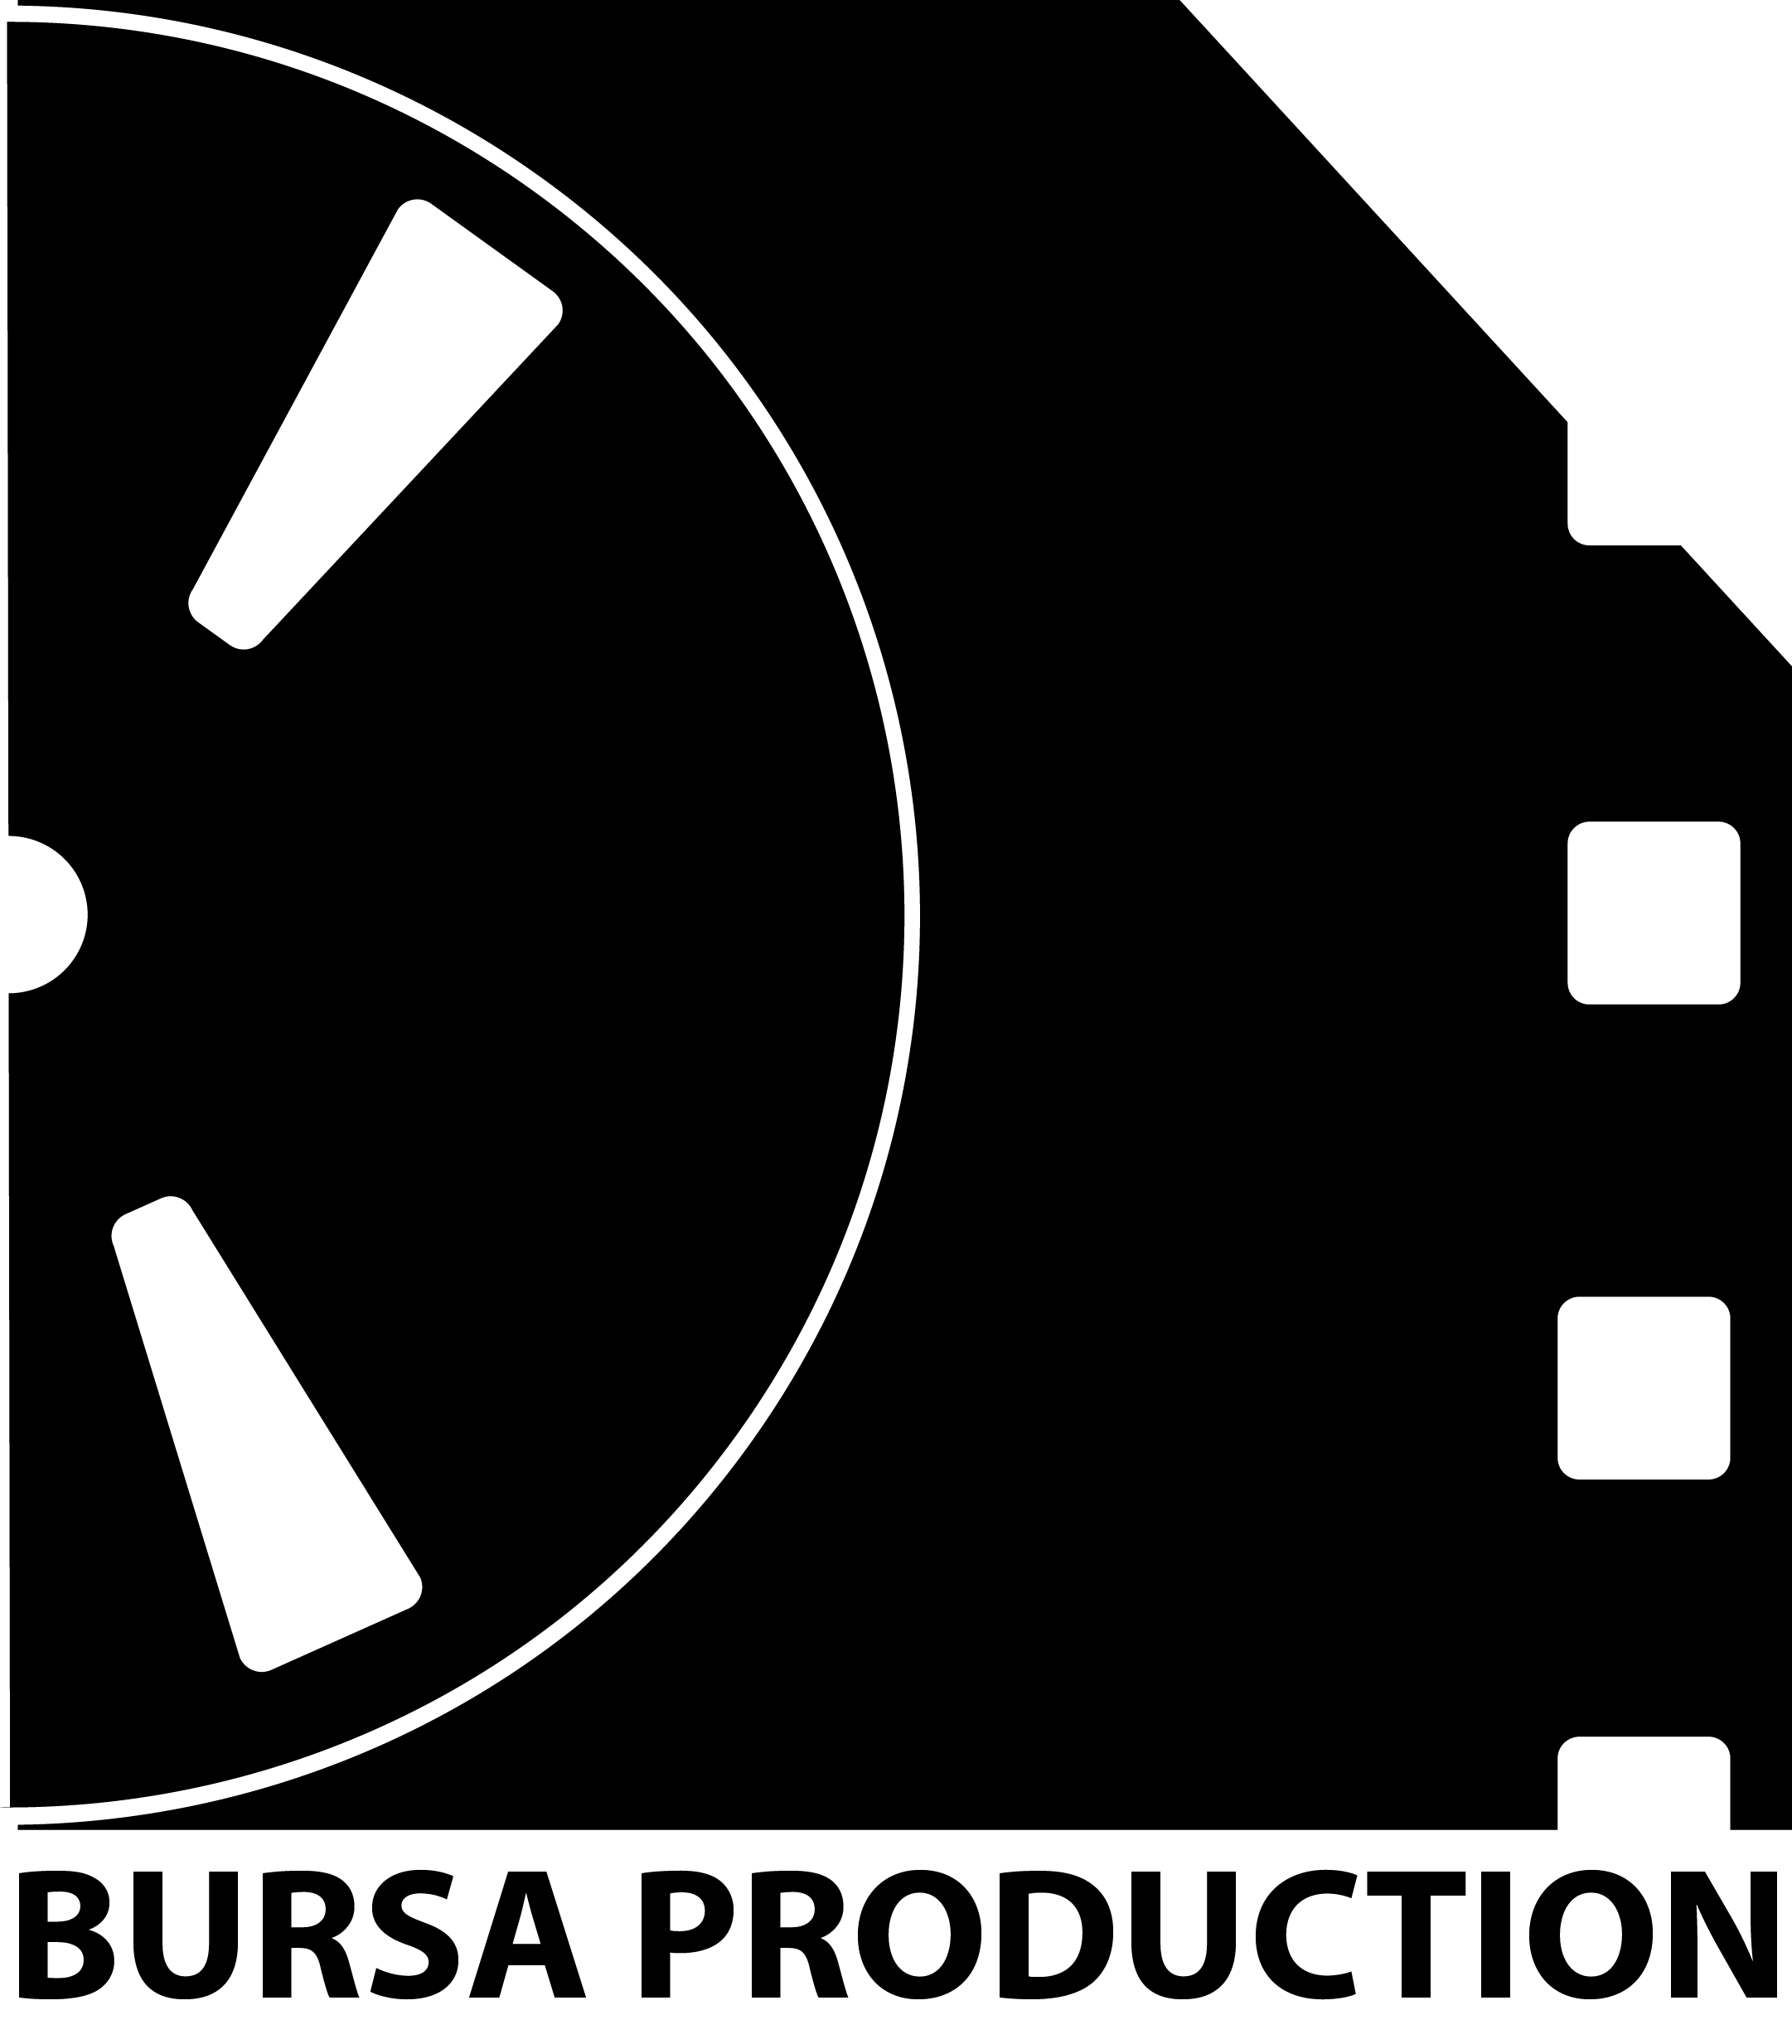 BURSA PRODUCTION